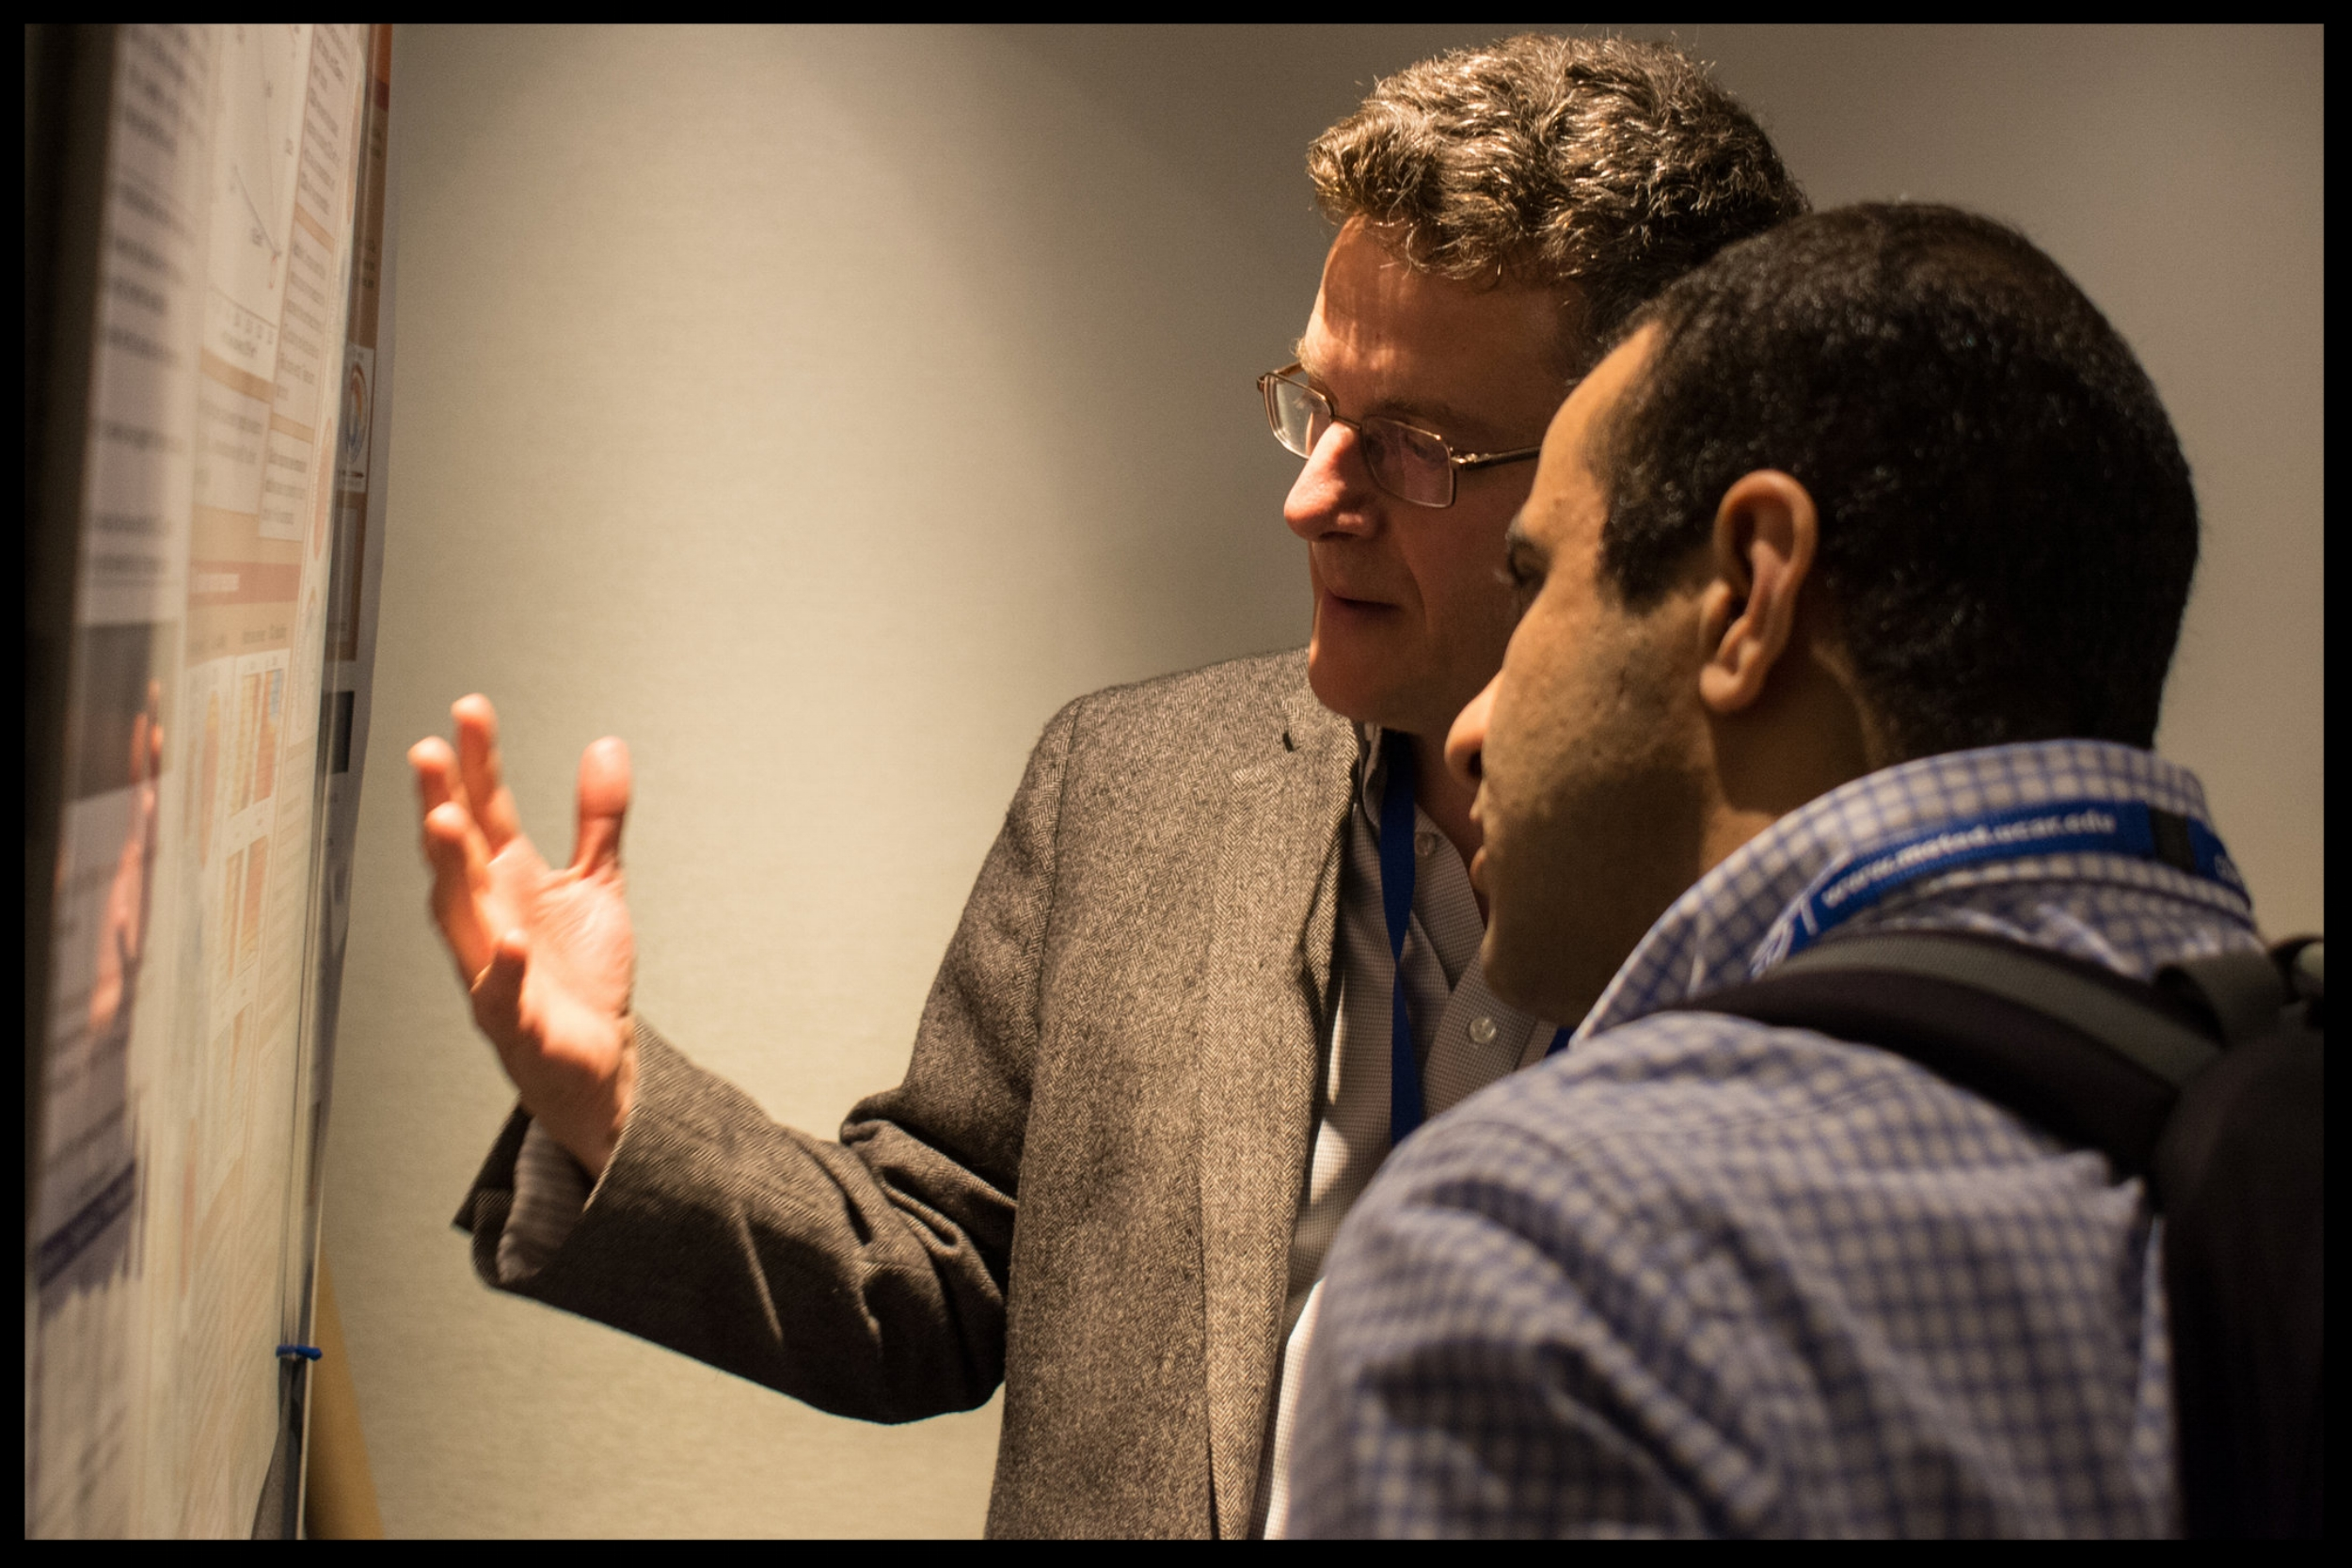 Paul, with Ali Moridnejad, discussing Kelly McCusker's poster at the 2017 CMOS Congress in Toronto. Photo by Dan Weaver.